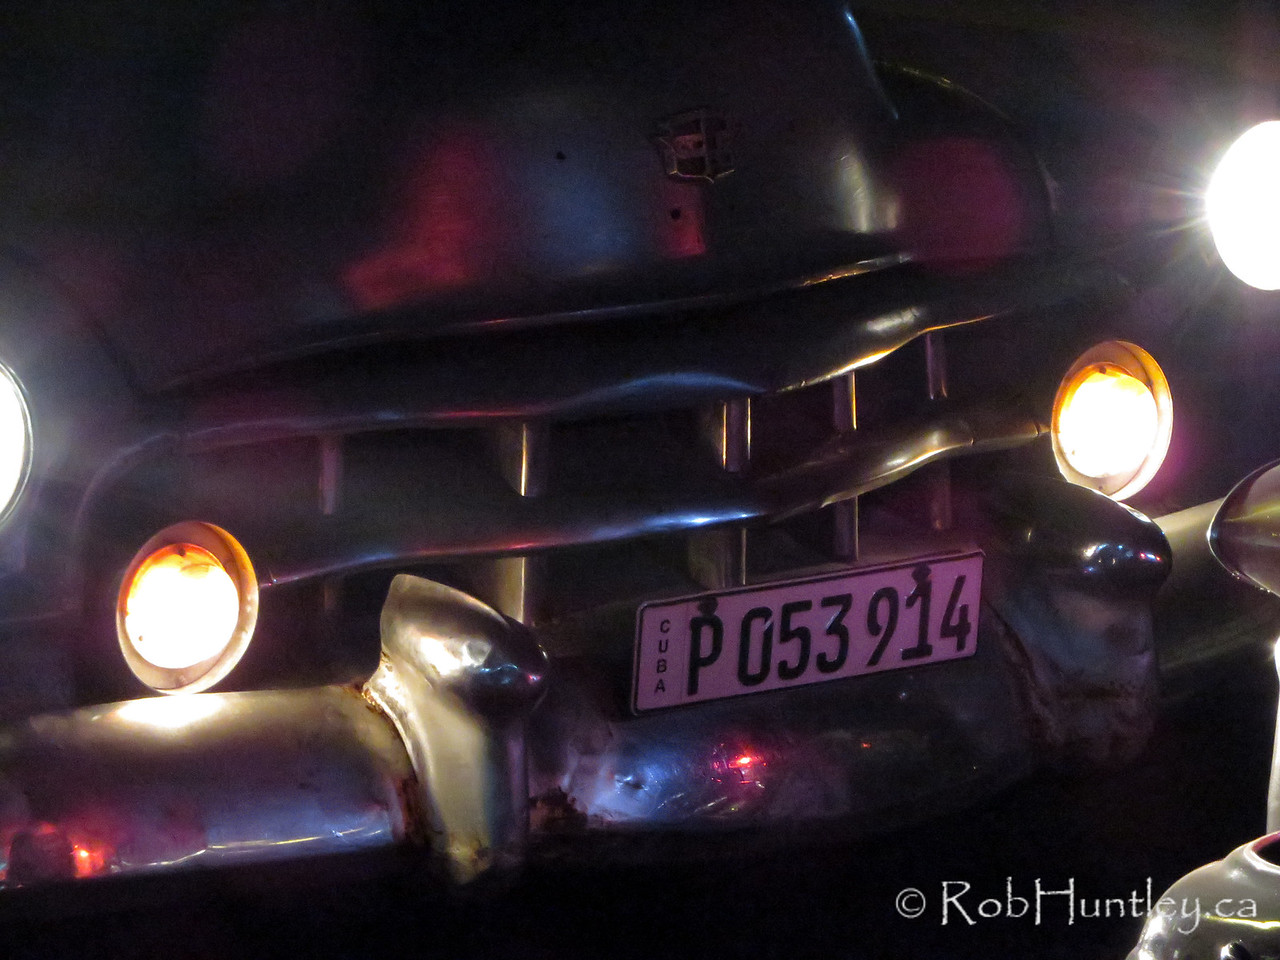 Old car at night.